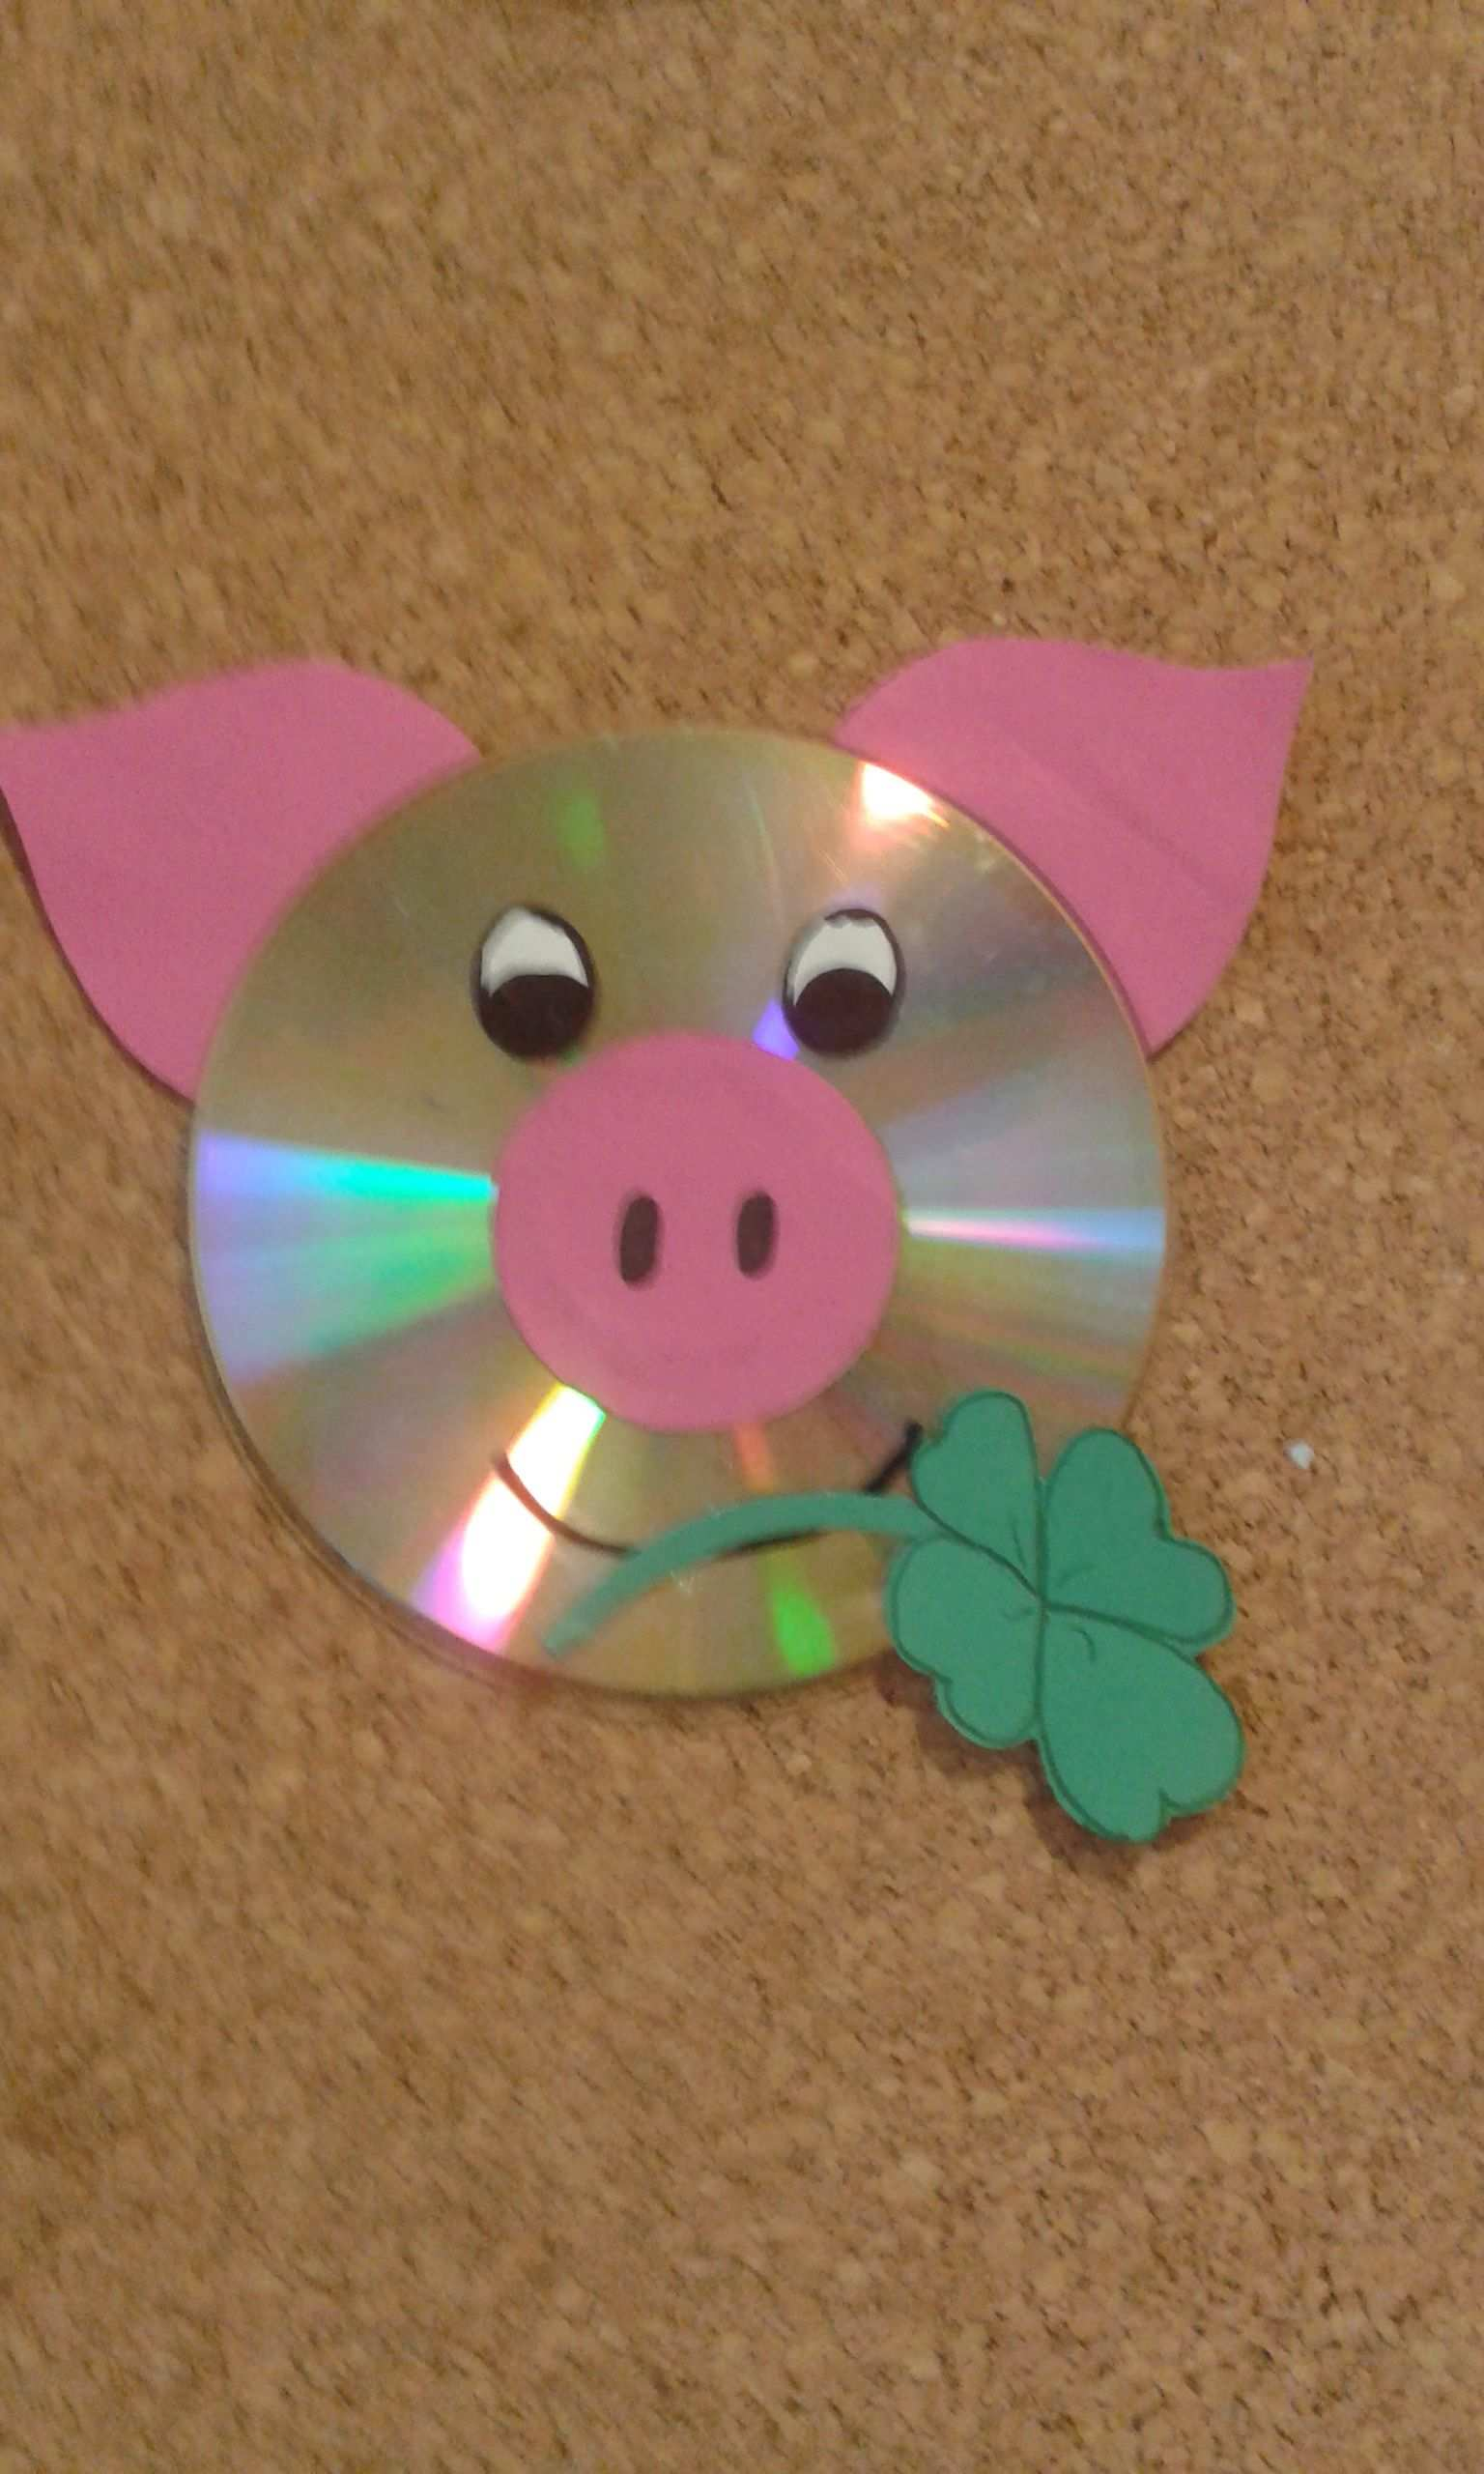 Pin By Rosemarie On Ujev Pig Crafts Animal Crafts For Kids Preschool Crafts